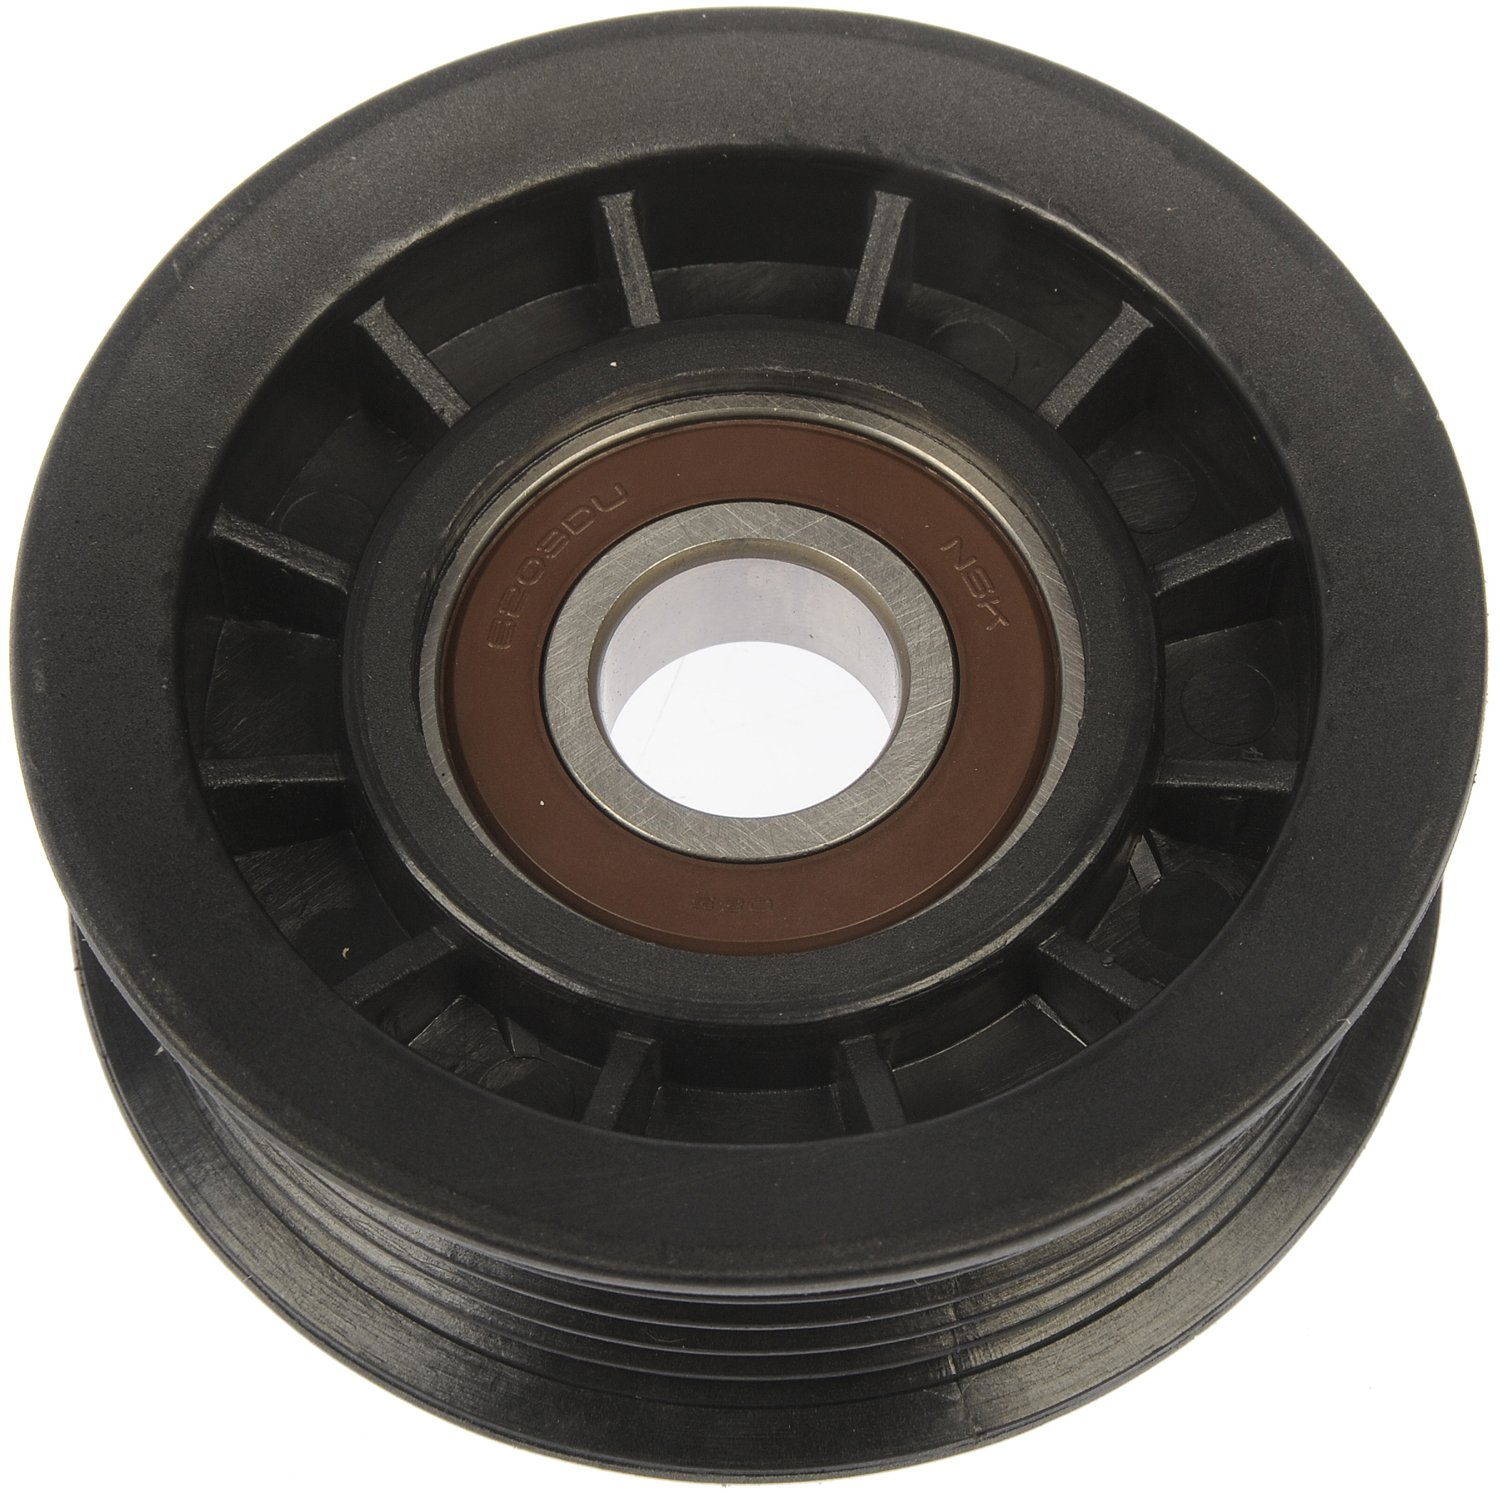 Dorman 419-5001 Drive Belt Idler Pulley For Acura ILX